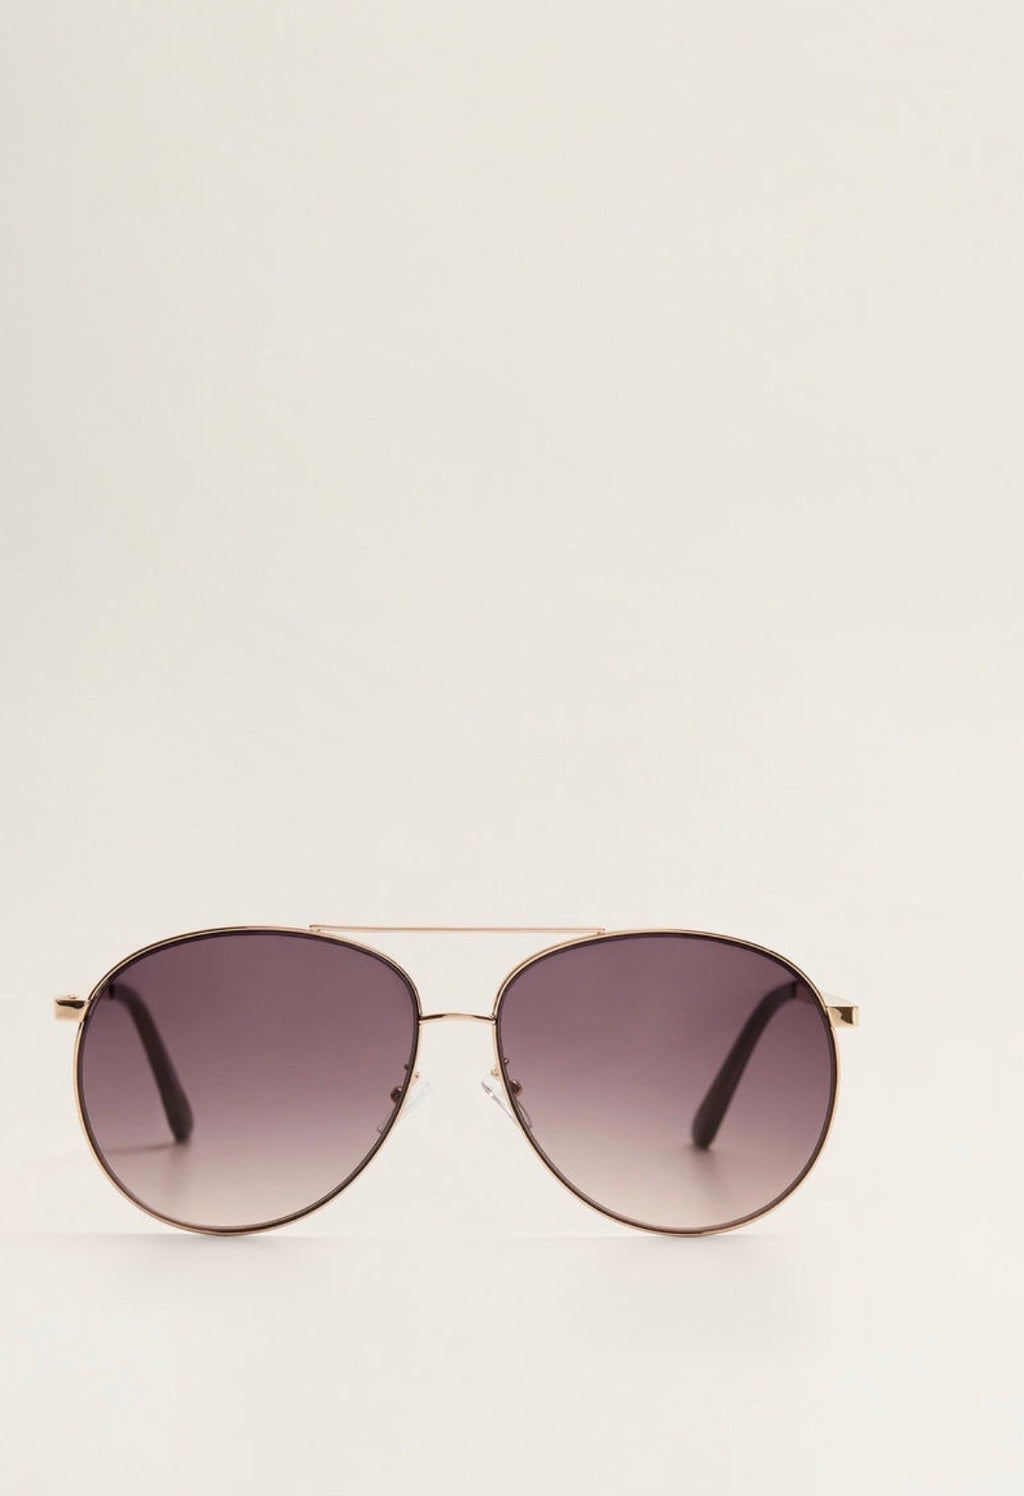 MANGO AVIATOR SUNGLASSES